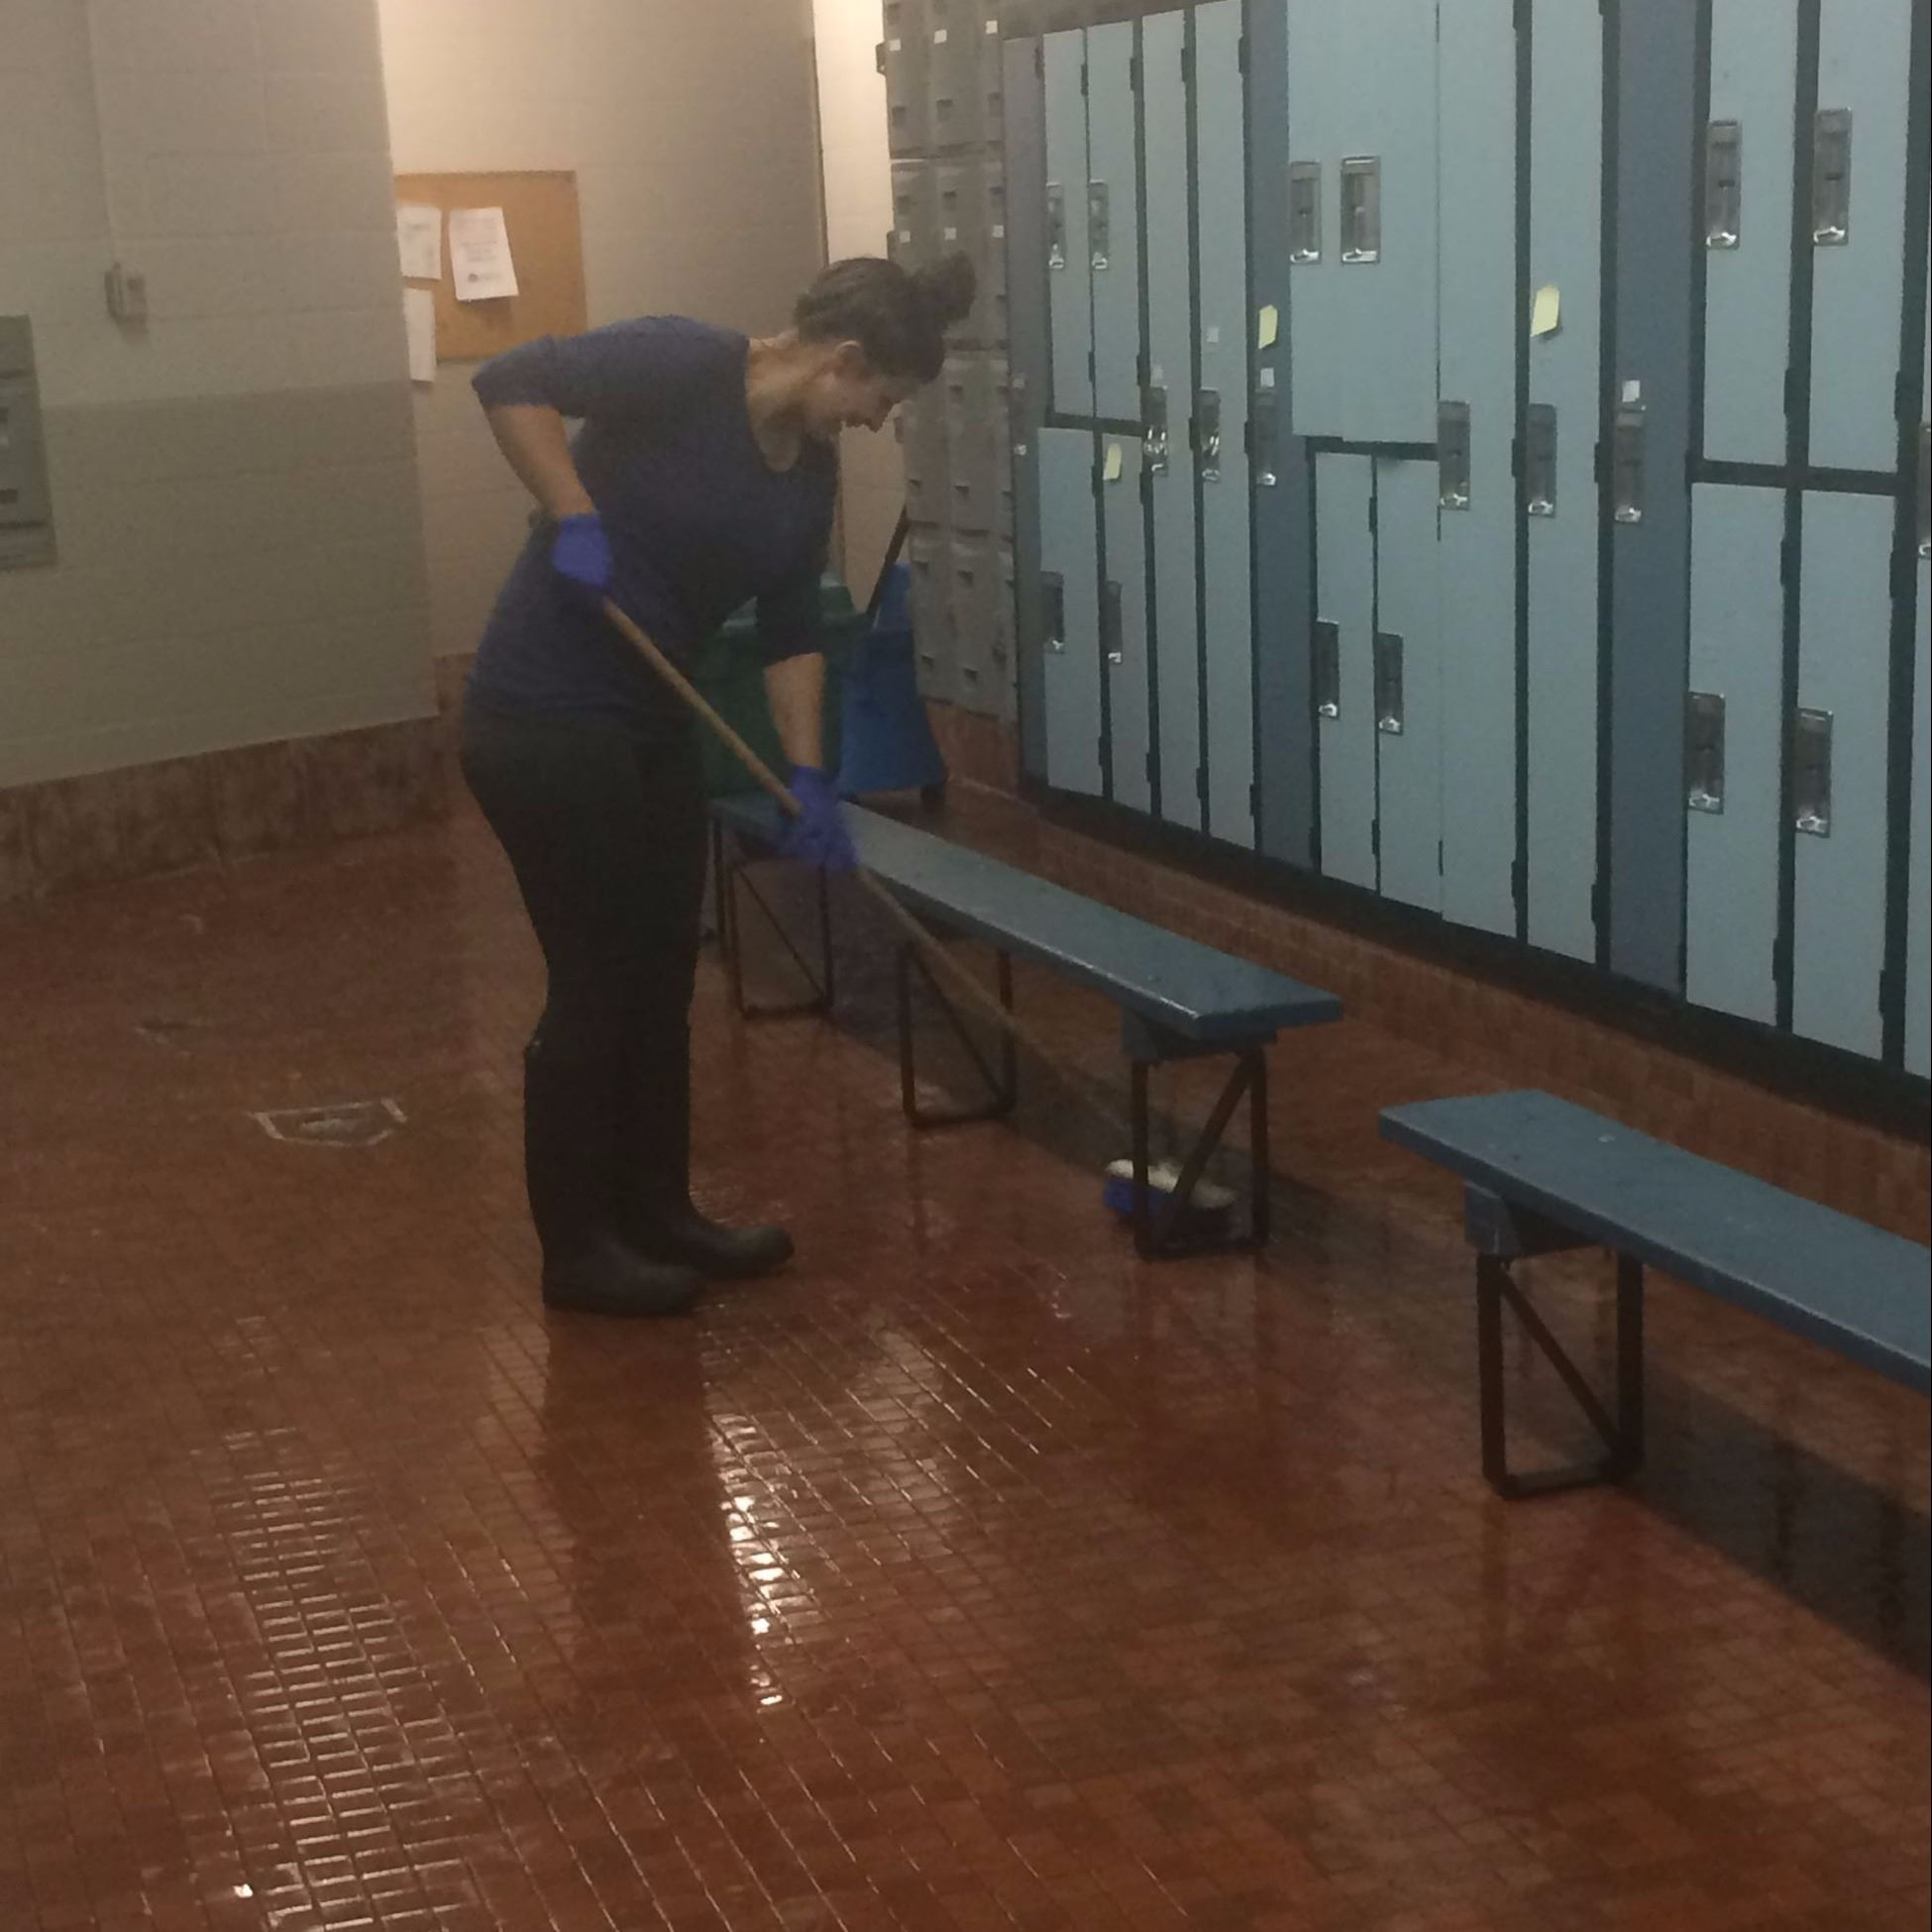 lifeguard preps the change room floor surfaces to buff off hard water stains and calcium build up.